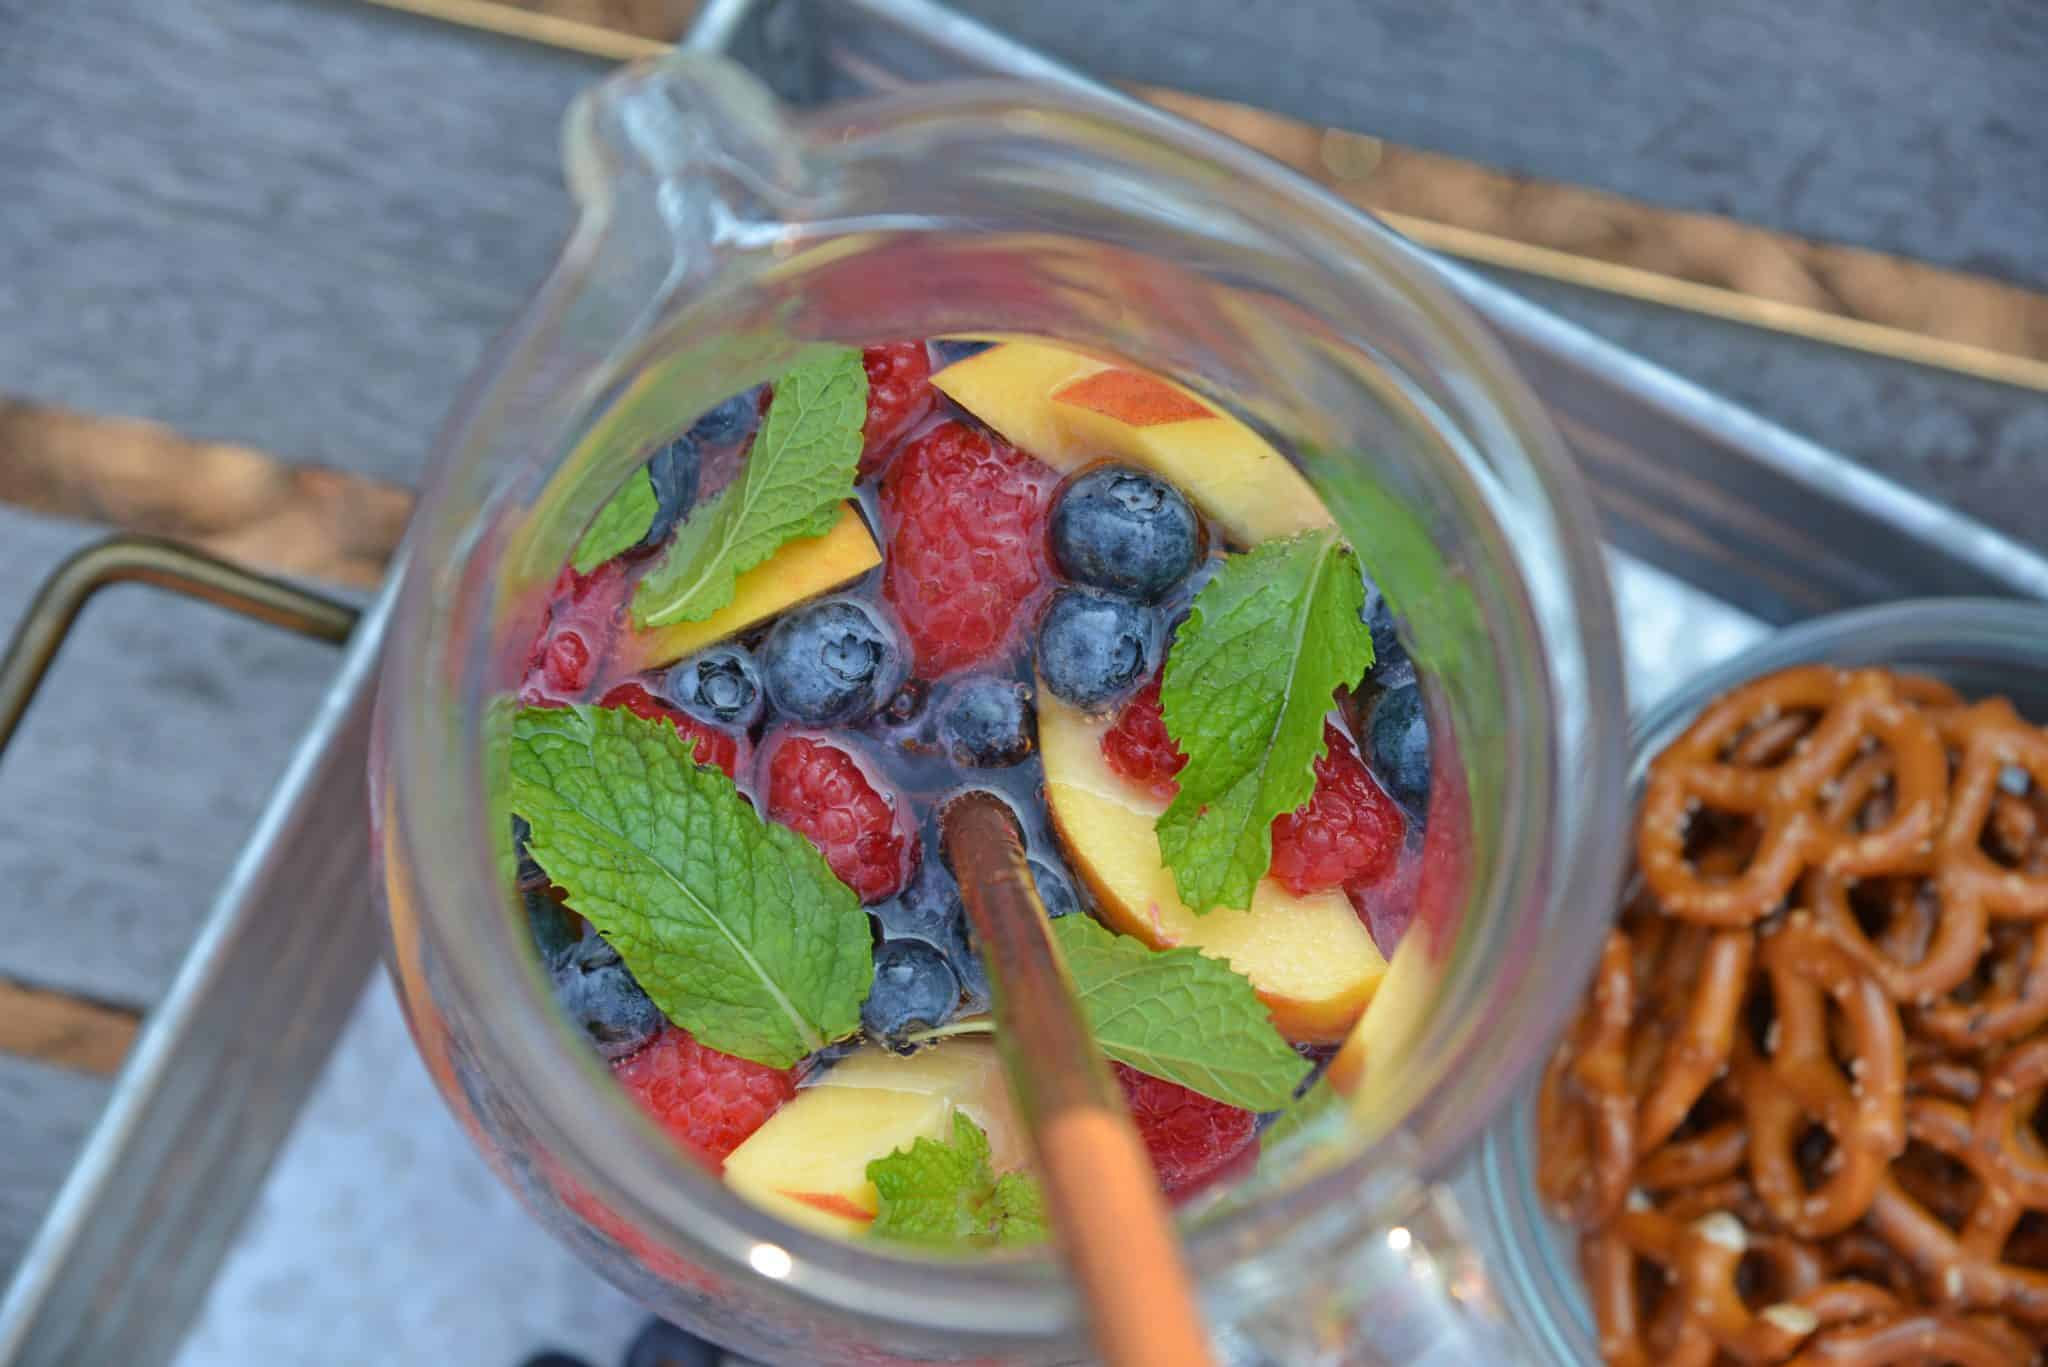 Sparkling Peach Sangria is the perfect summer cocktail recipe for your next party! Make a non-alcoholic and alcoholic version with fresh summer fruits.